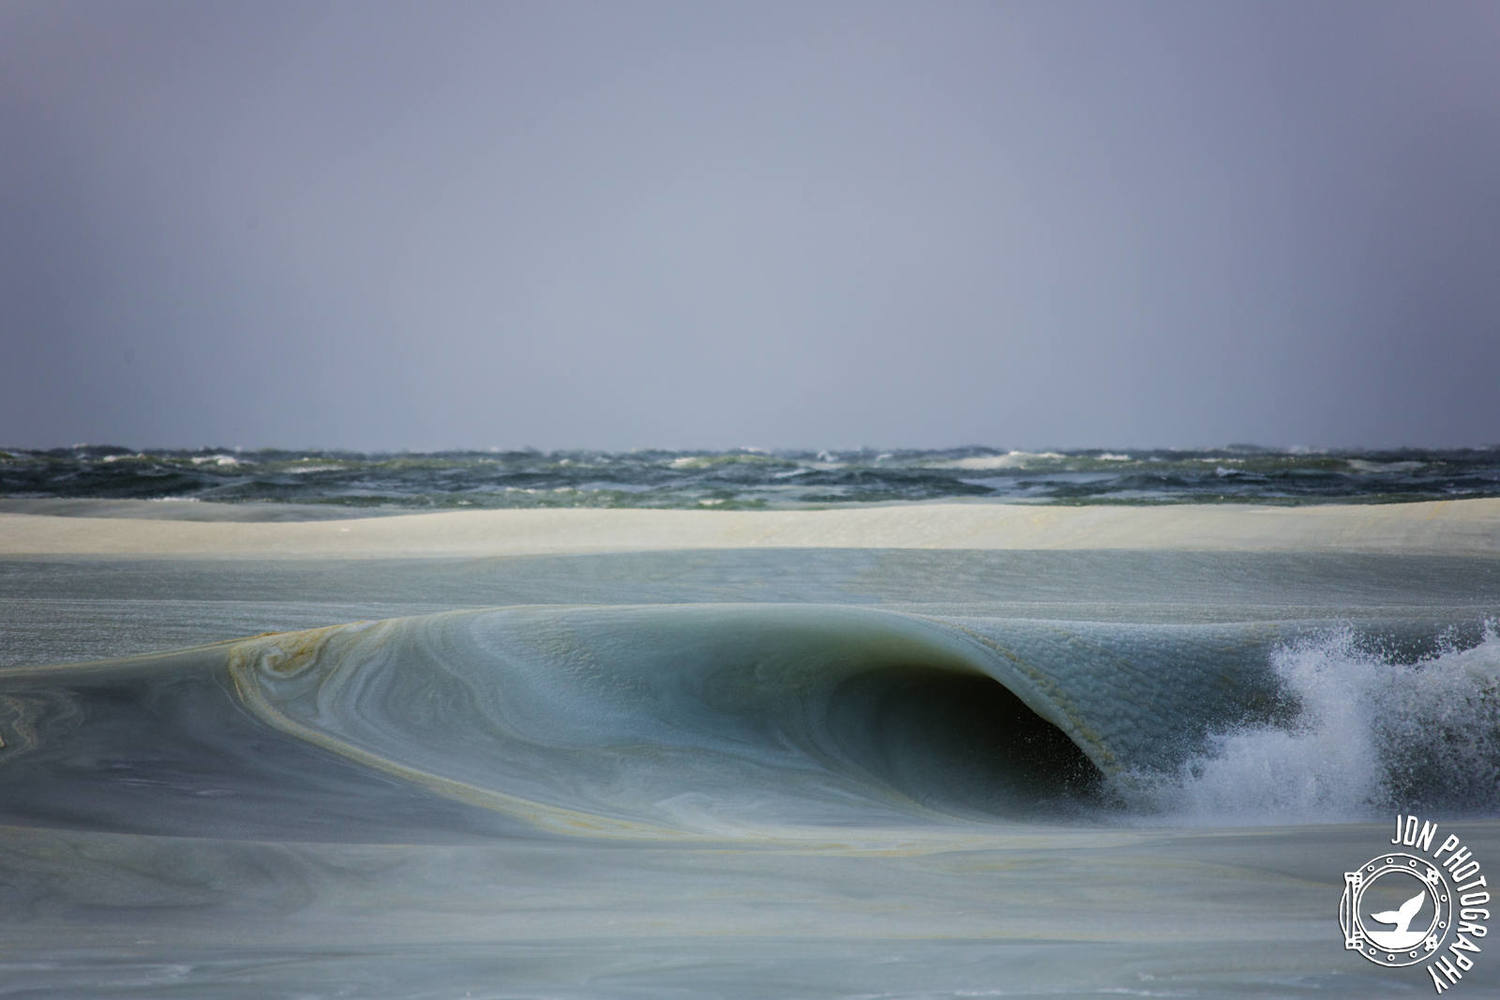 Freezing Waves Photography by Jonathan Nimerfroh